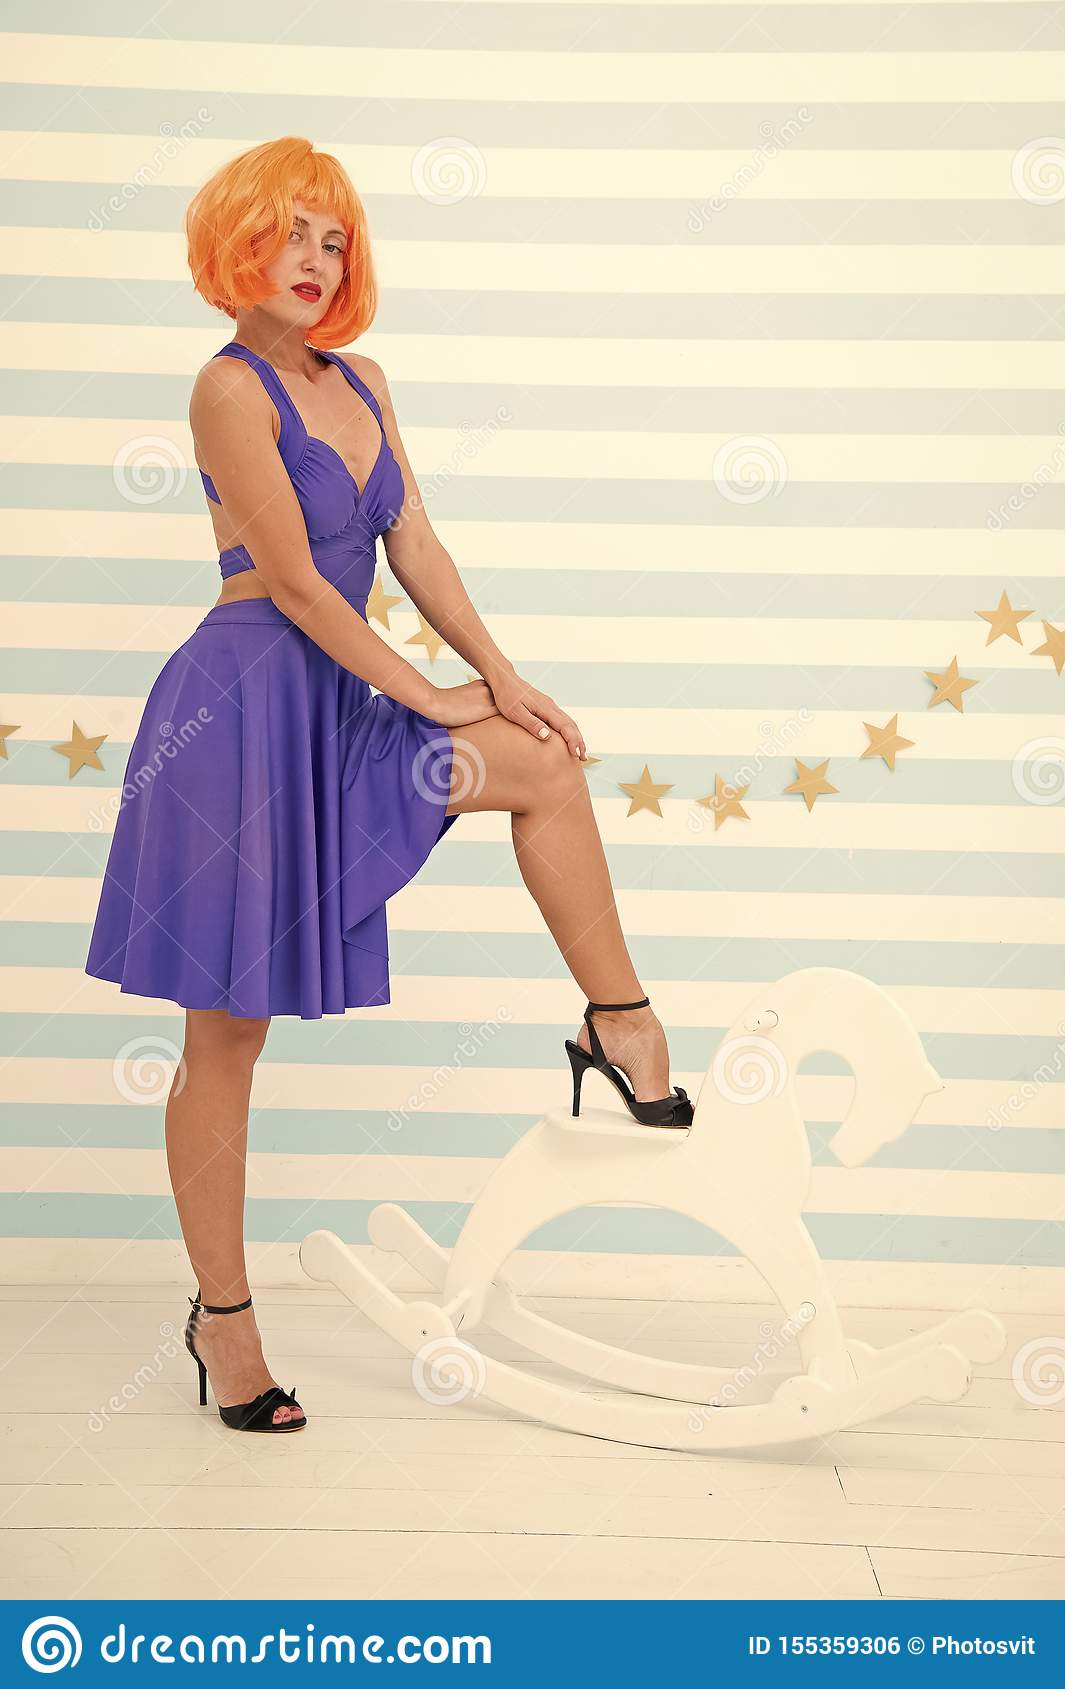 Woman with perfect legs. Beauty woman with soft and smooth skin. Skin and beauty care products. Put some excitement